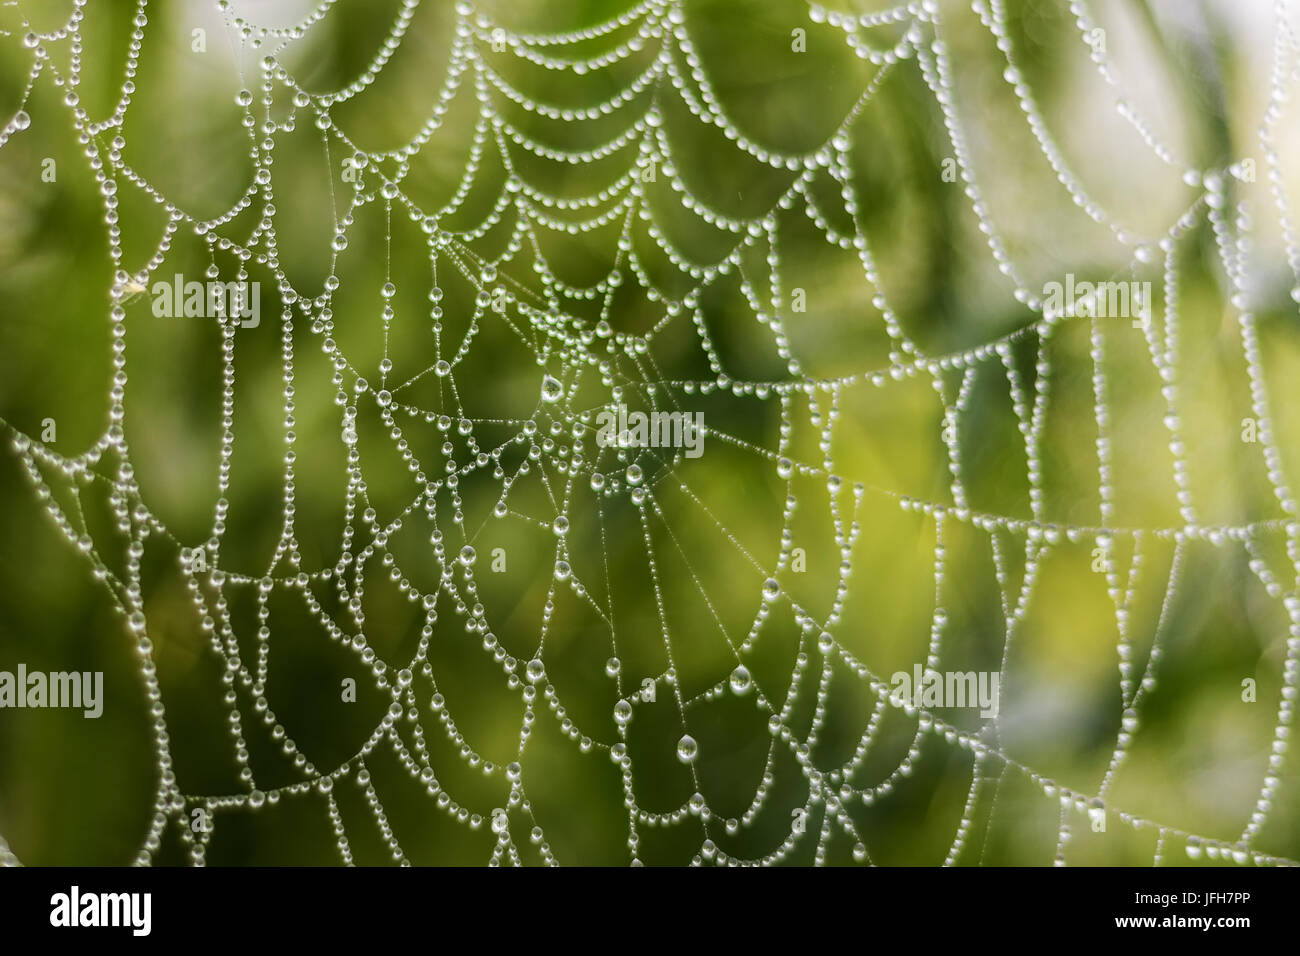 Spiderweb with dewdrops - Stock Image